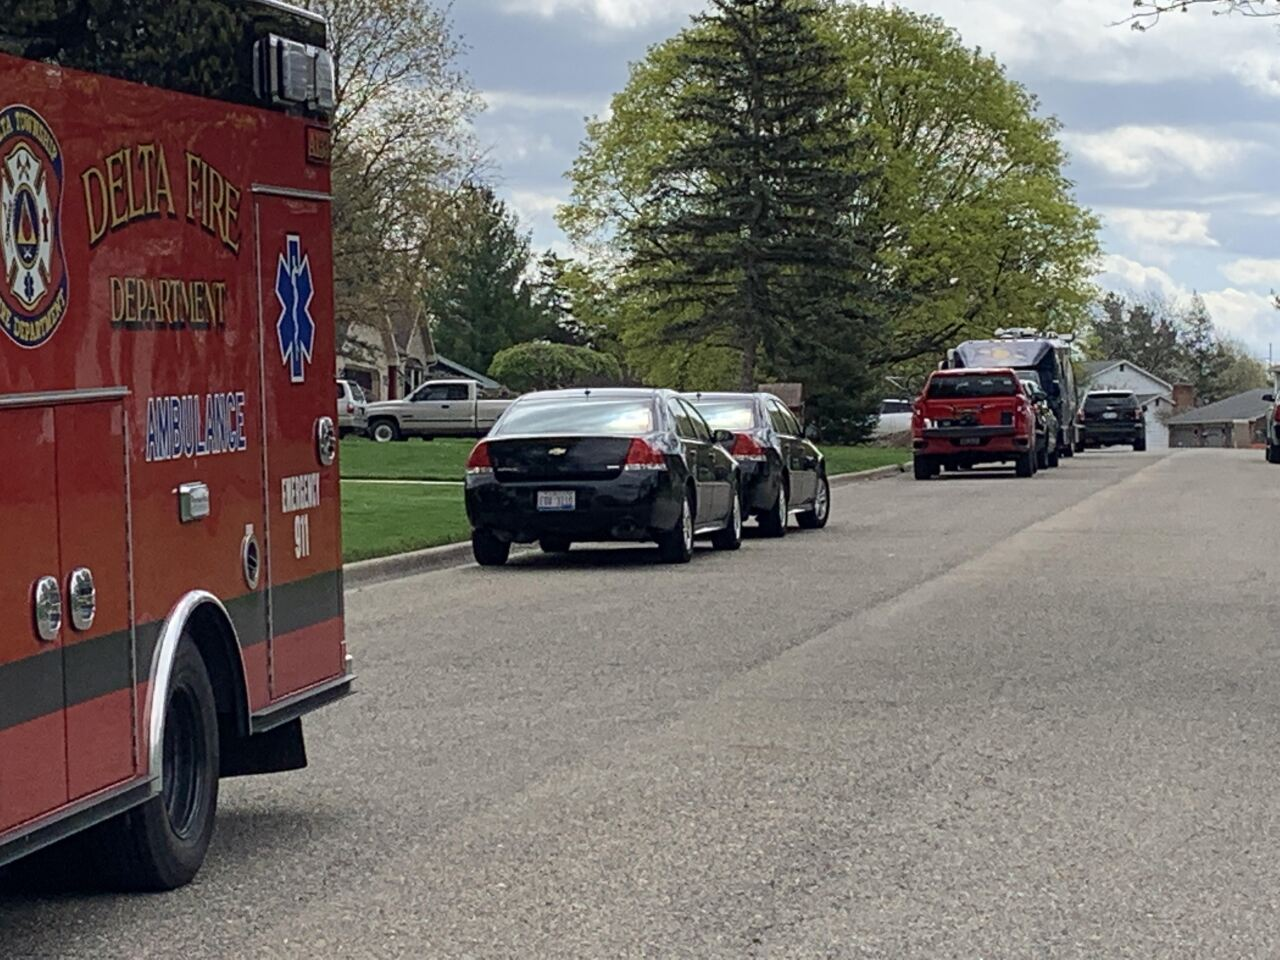 Crews are on the scene in Delta Twp.